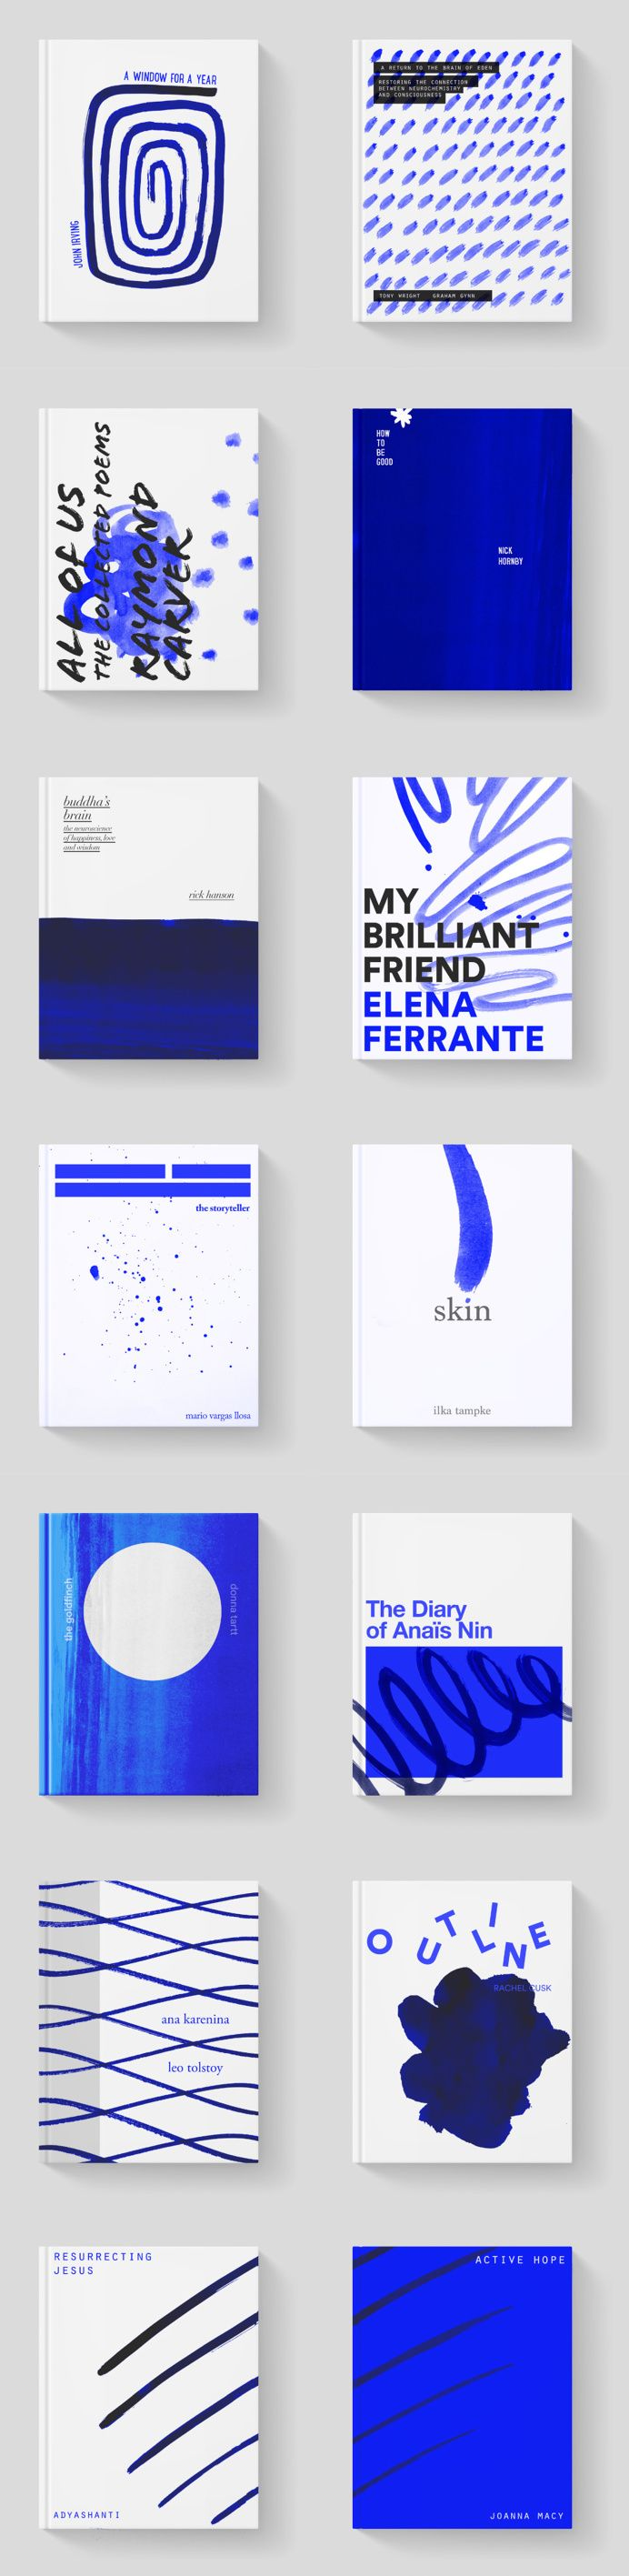 Everything — Designspiration                                                                                                                                                                                 More